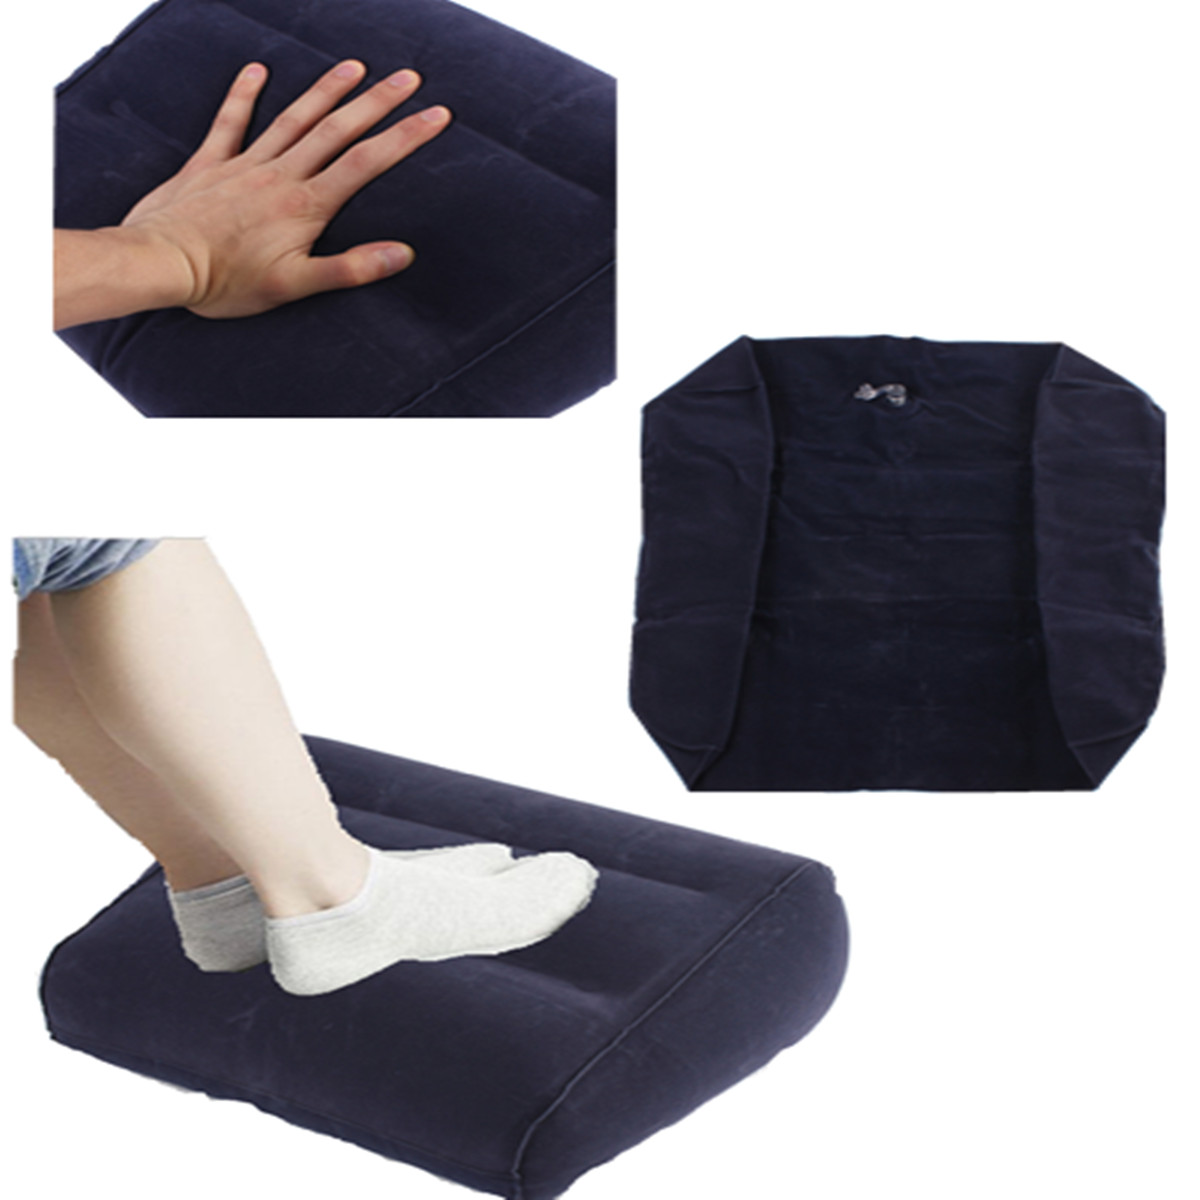 ... Foam Leg Pillow Orthopedic Firm Knee Support Pain Relief+Cover - eBay